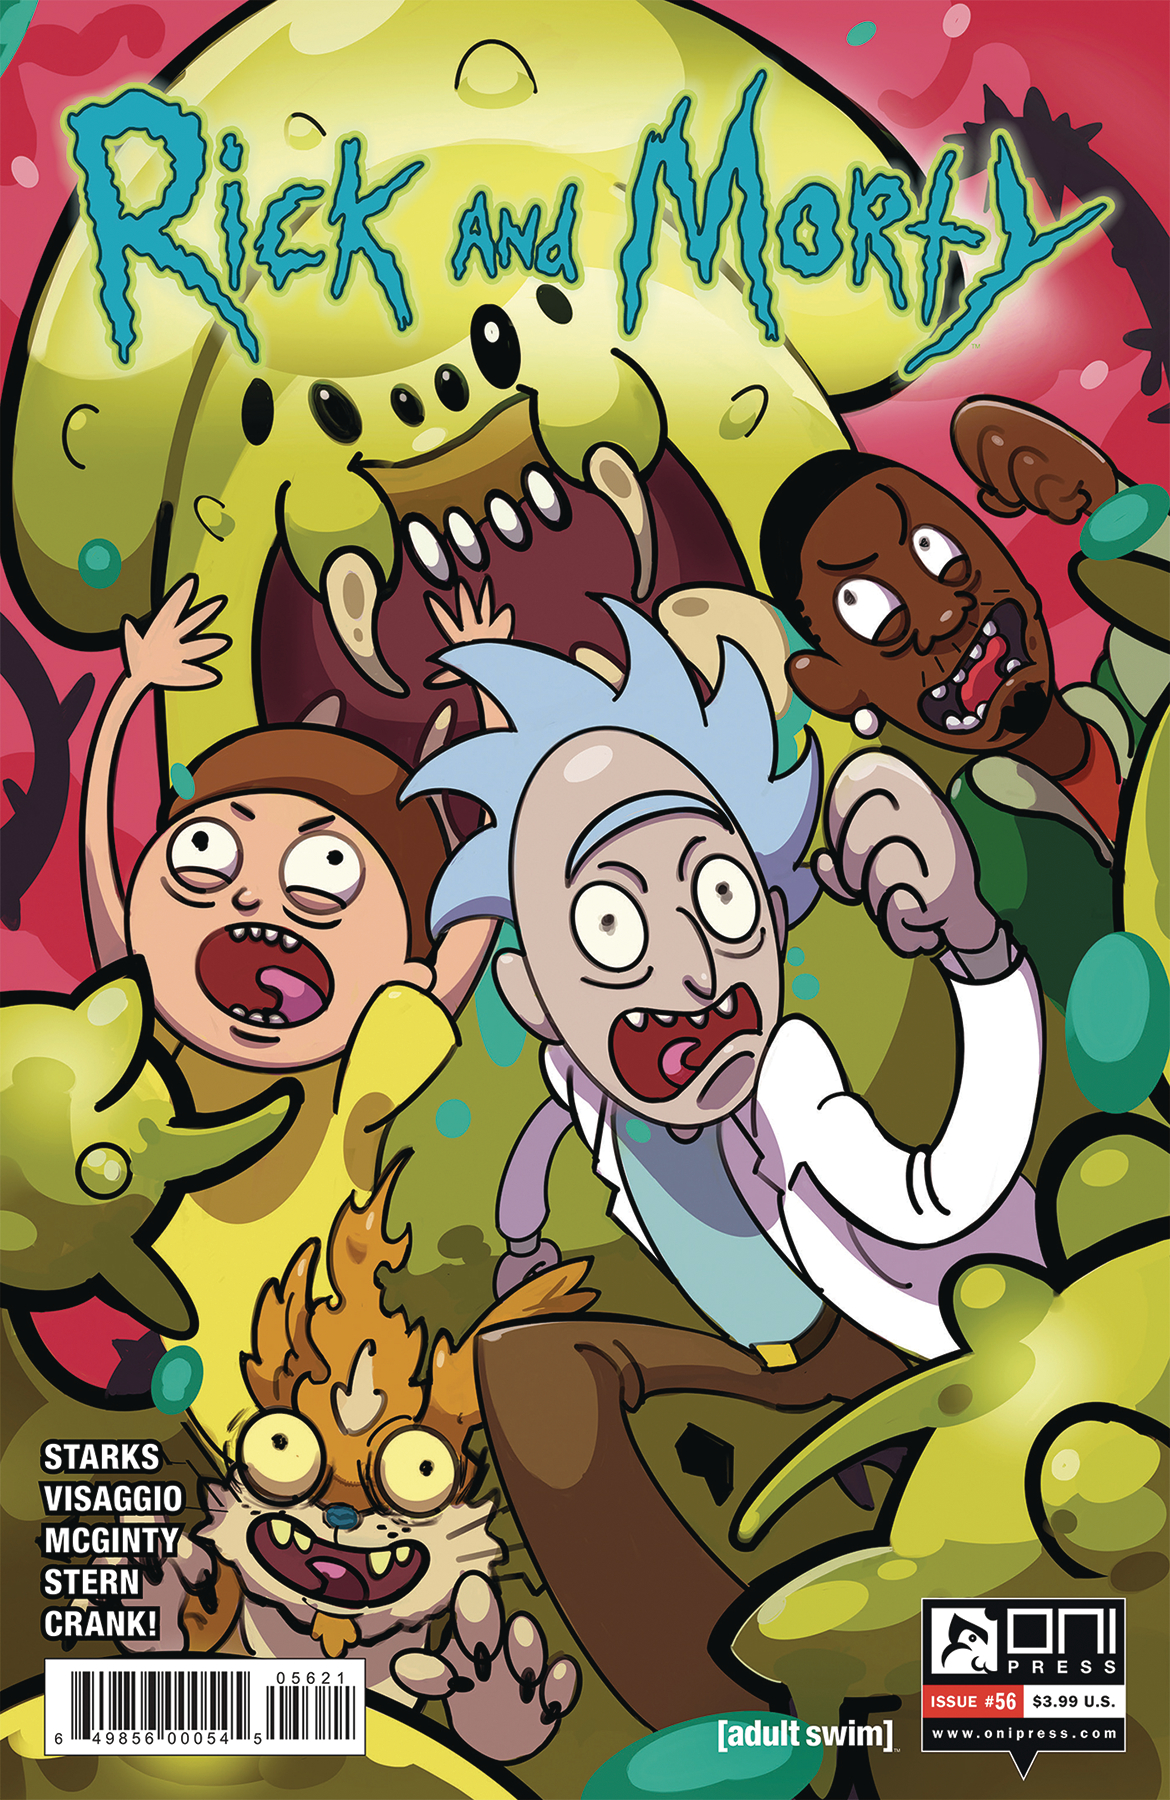 Rick And Morty Begins Final Mega-Story, The Rickoning, in Oni Press 2019 November Solicitations